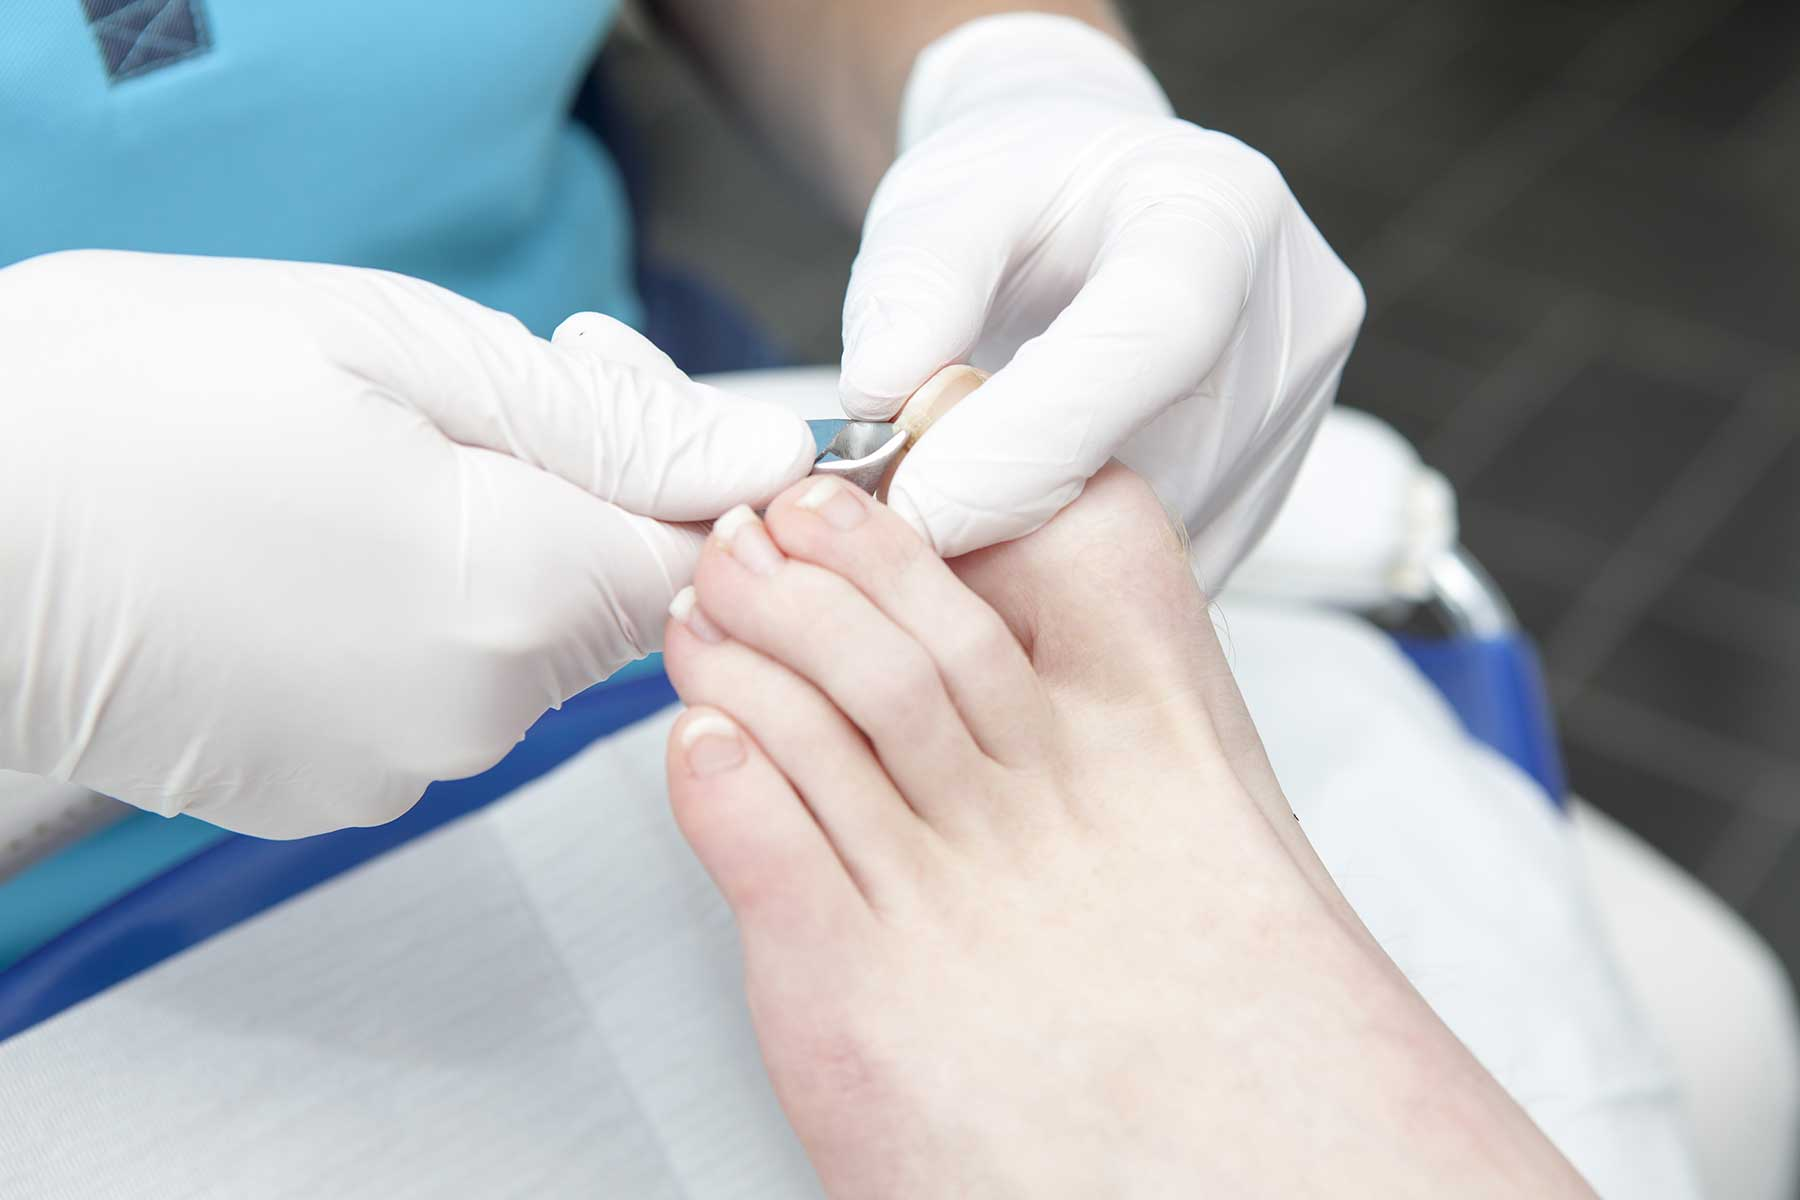 Ingrowing toenail treatment Farnham Surrey